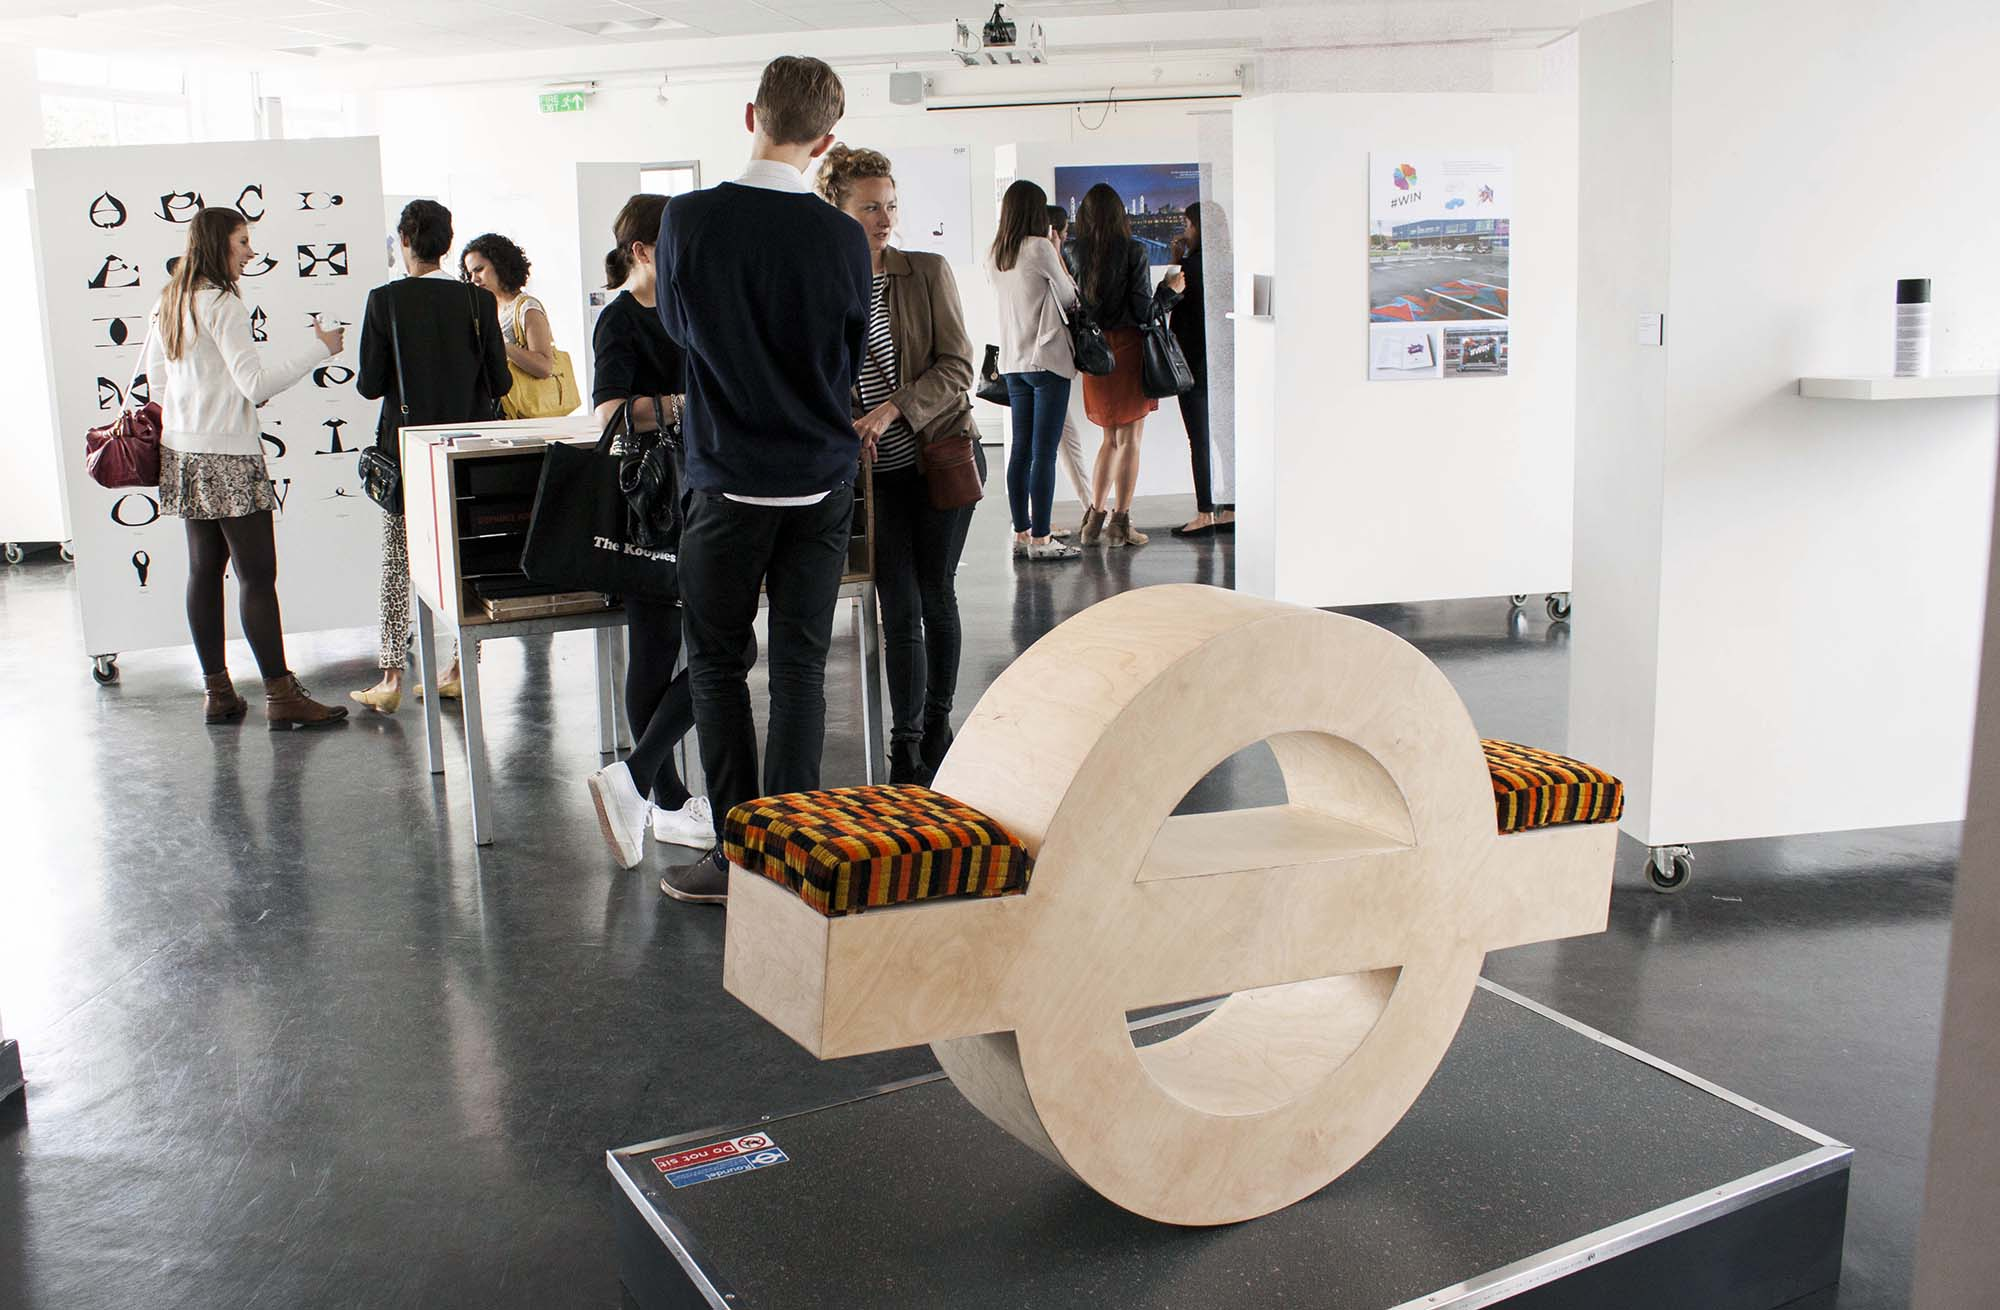 Student Work From The Art Design And Architecture Degree Show